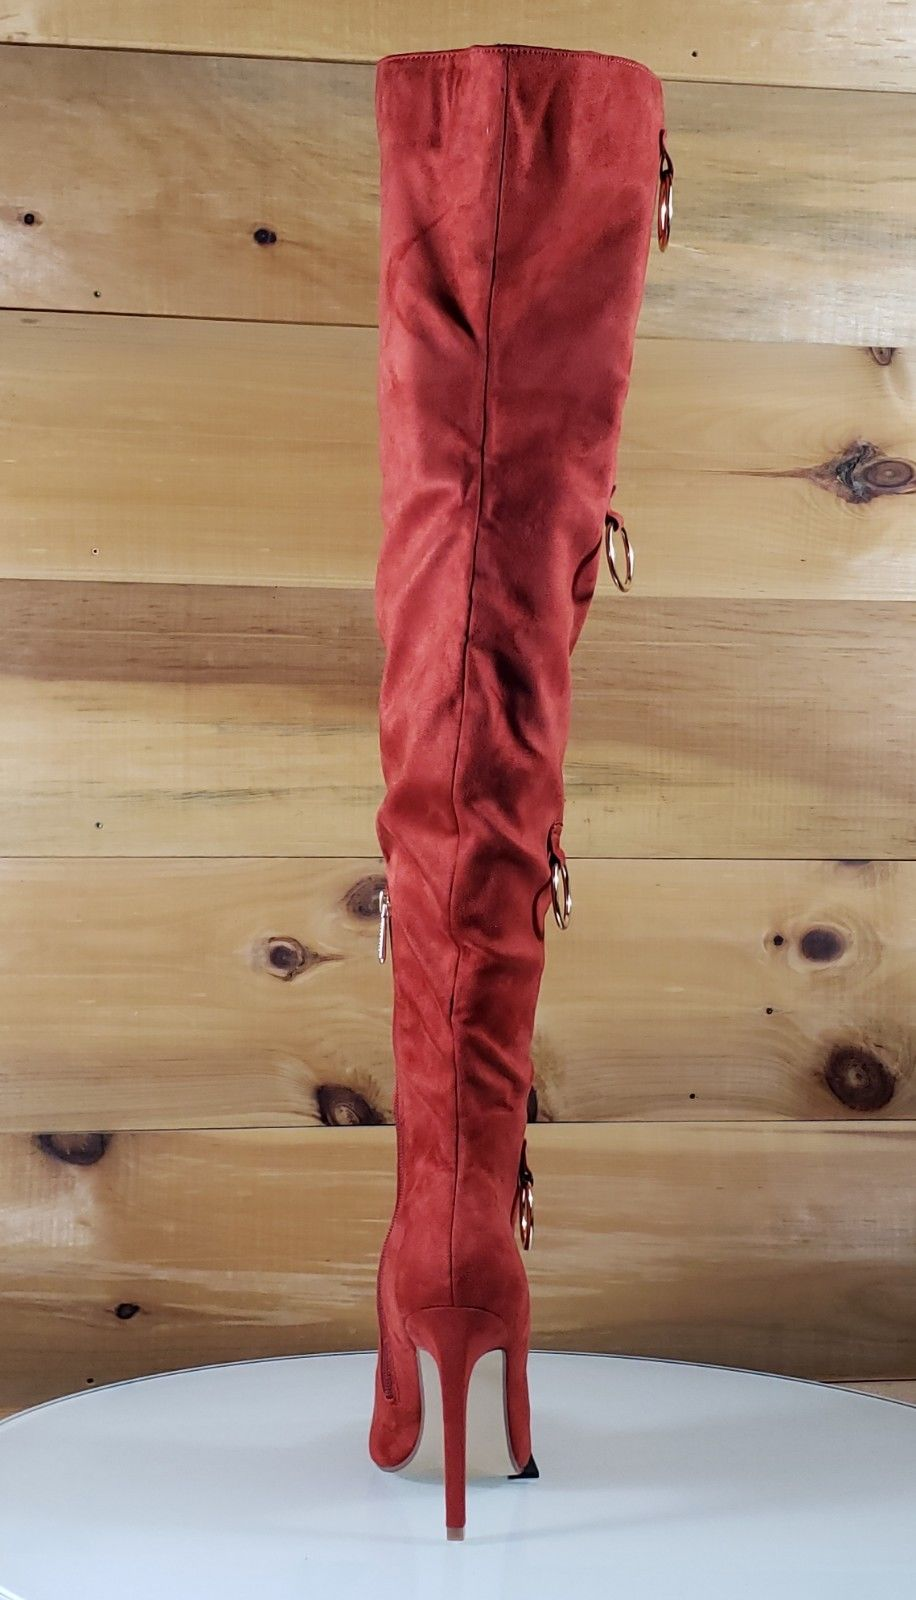 "CR Gigi 68 Rust Red OTK Thigh Boot 4.5"" High Heel Gold Bull Ring Decor 6-11"